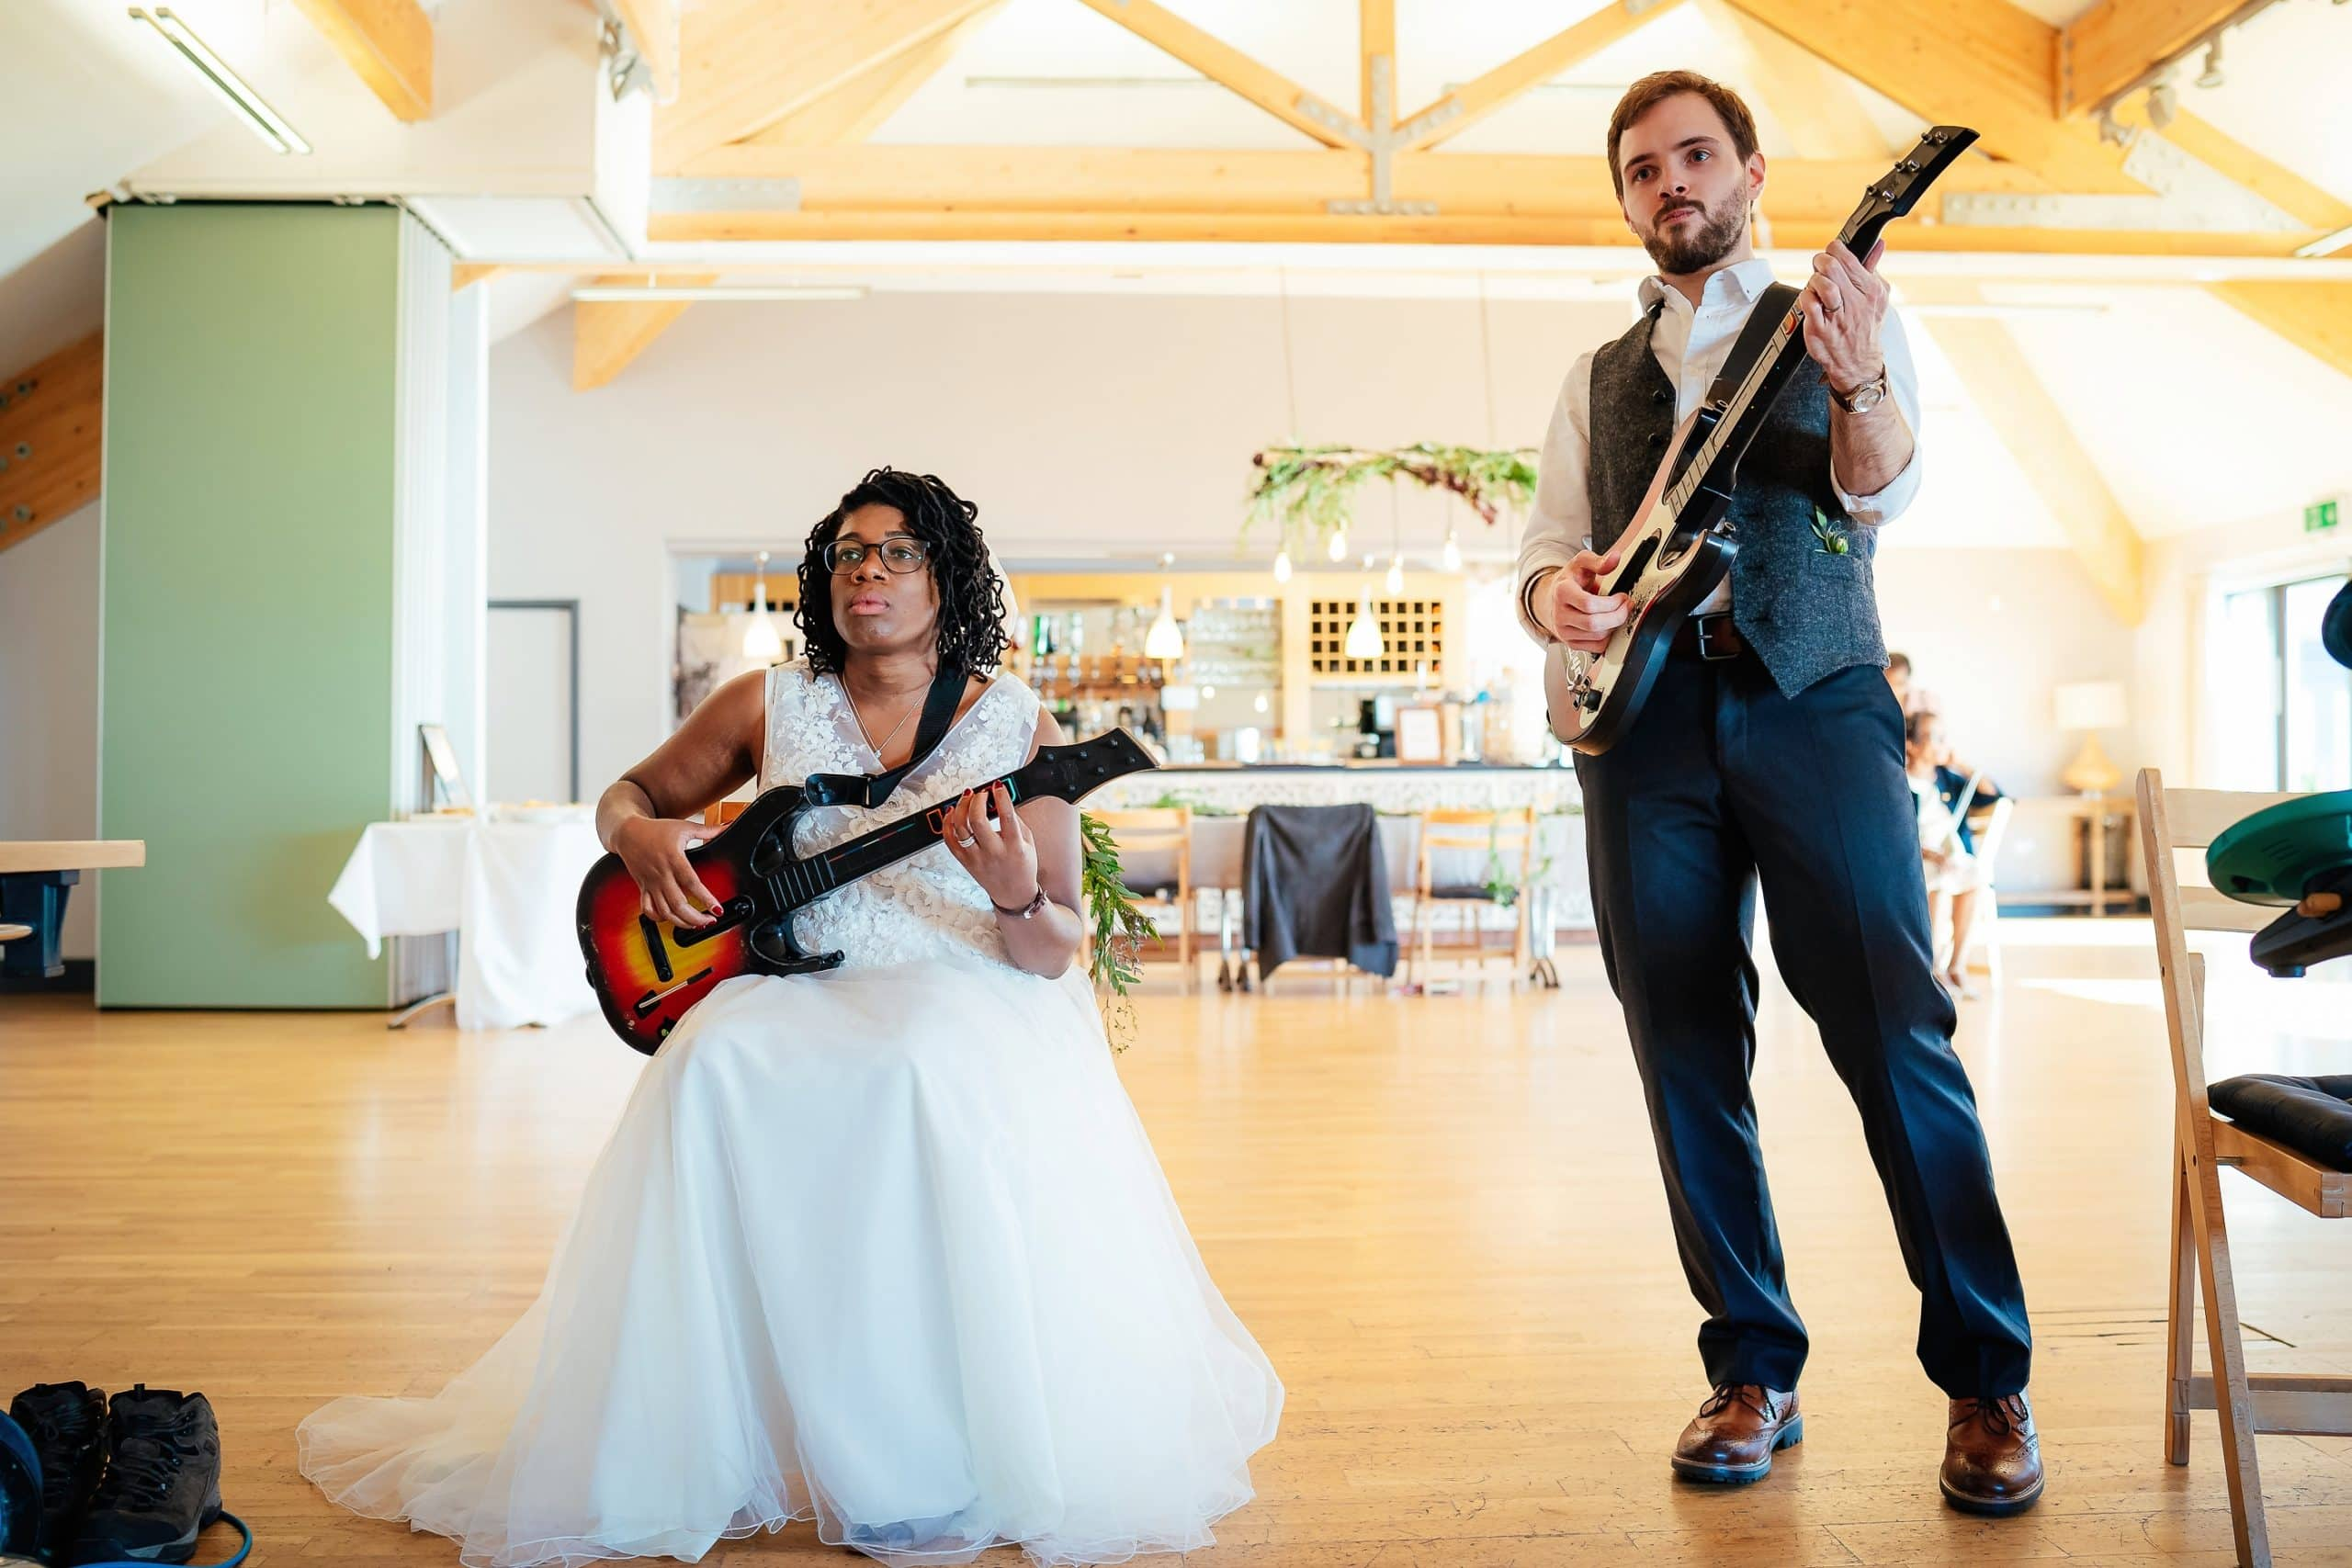 Playing guitar hero on their wedding day